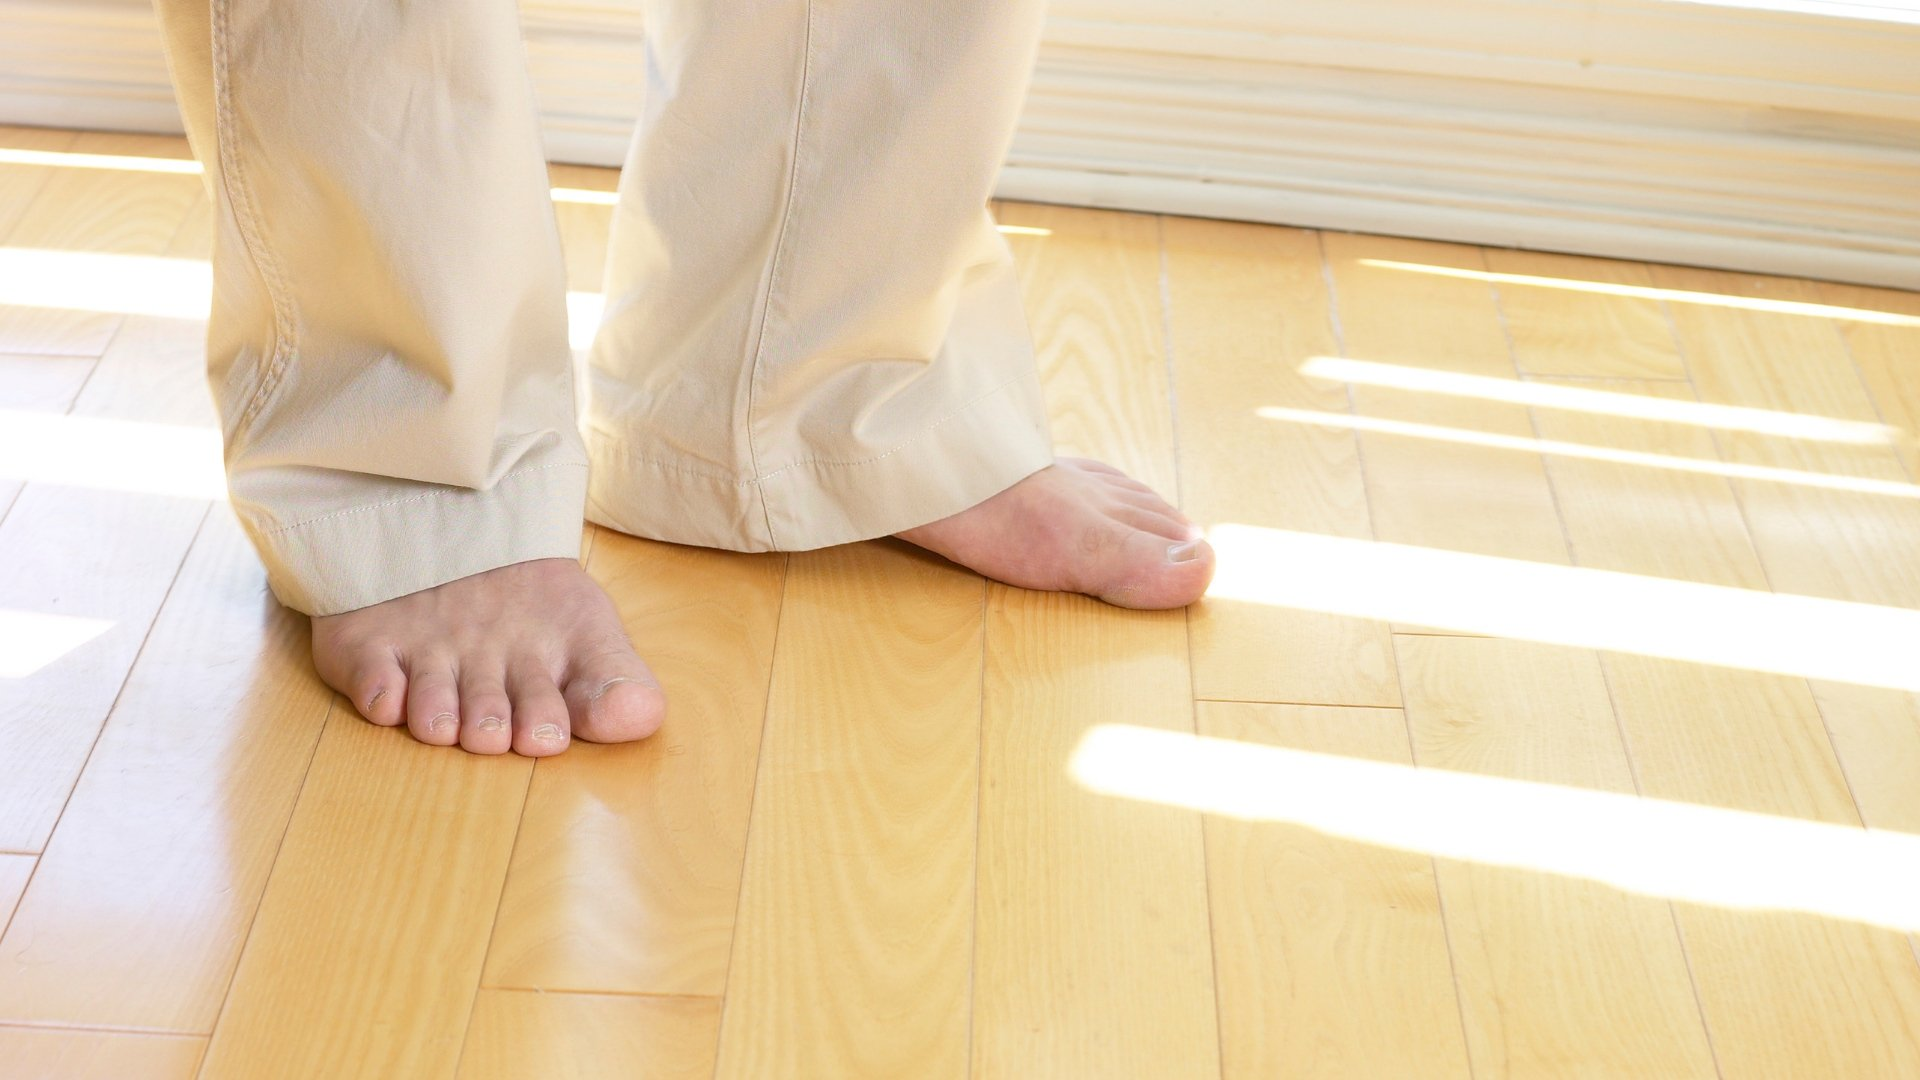 Bare Feet on Cold Wood Floor